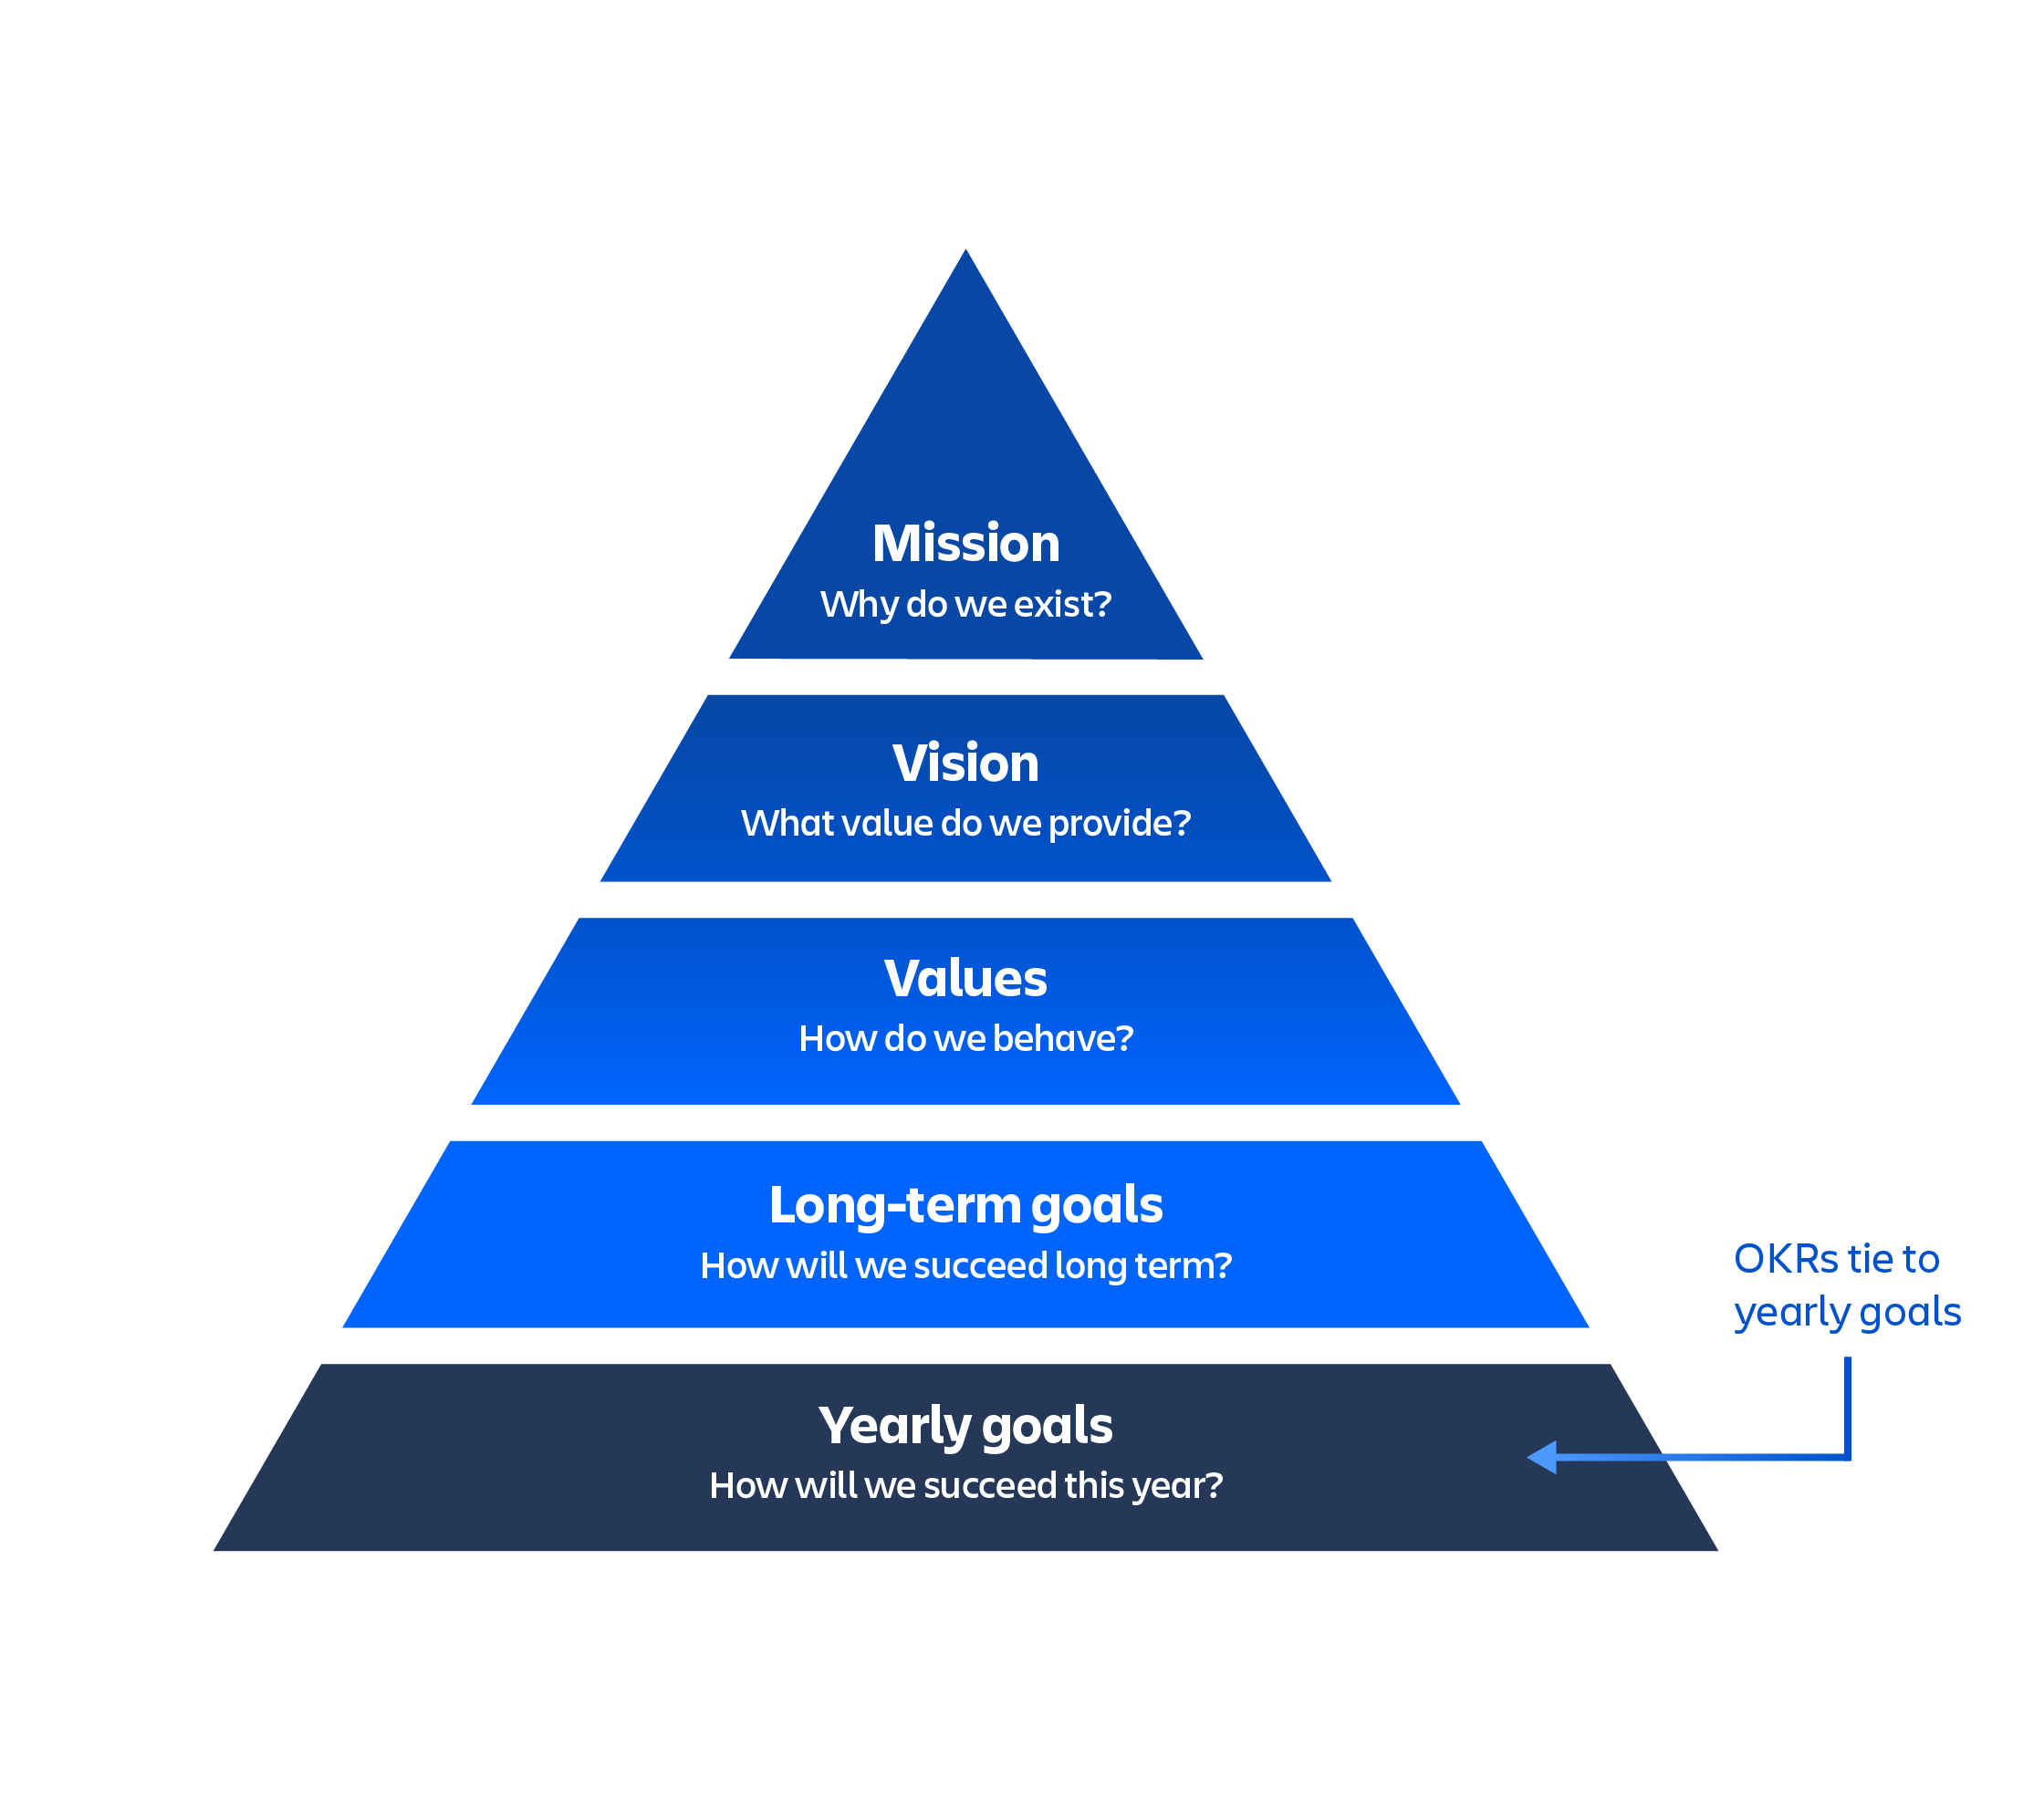 OKRs pyramid with yearly goals at the base